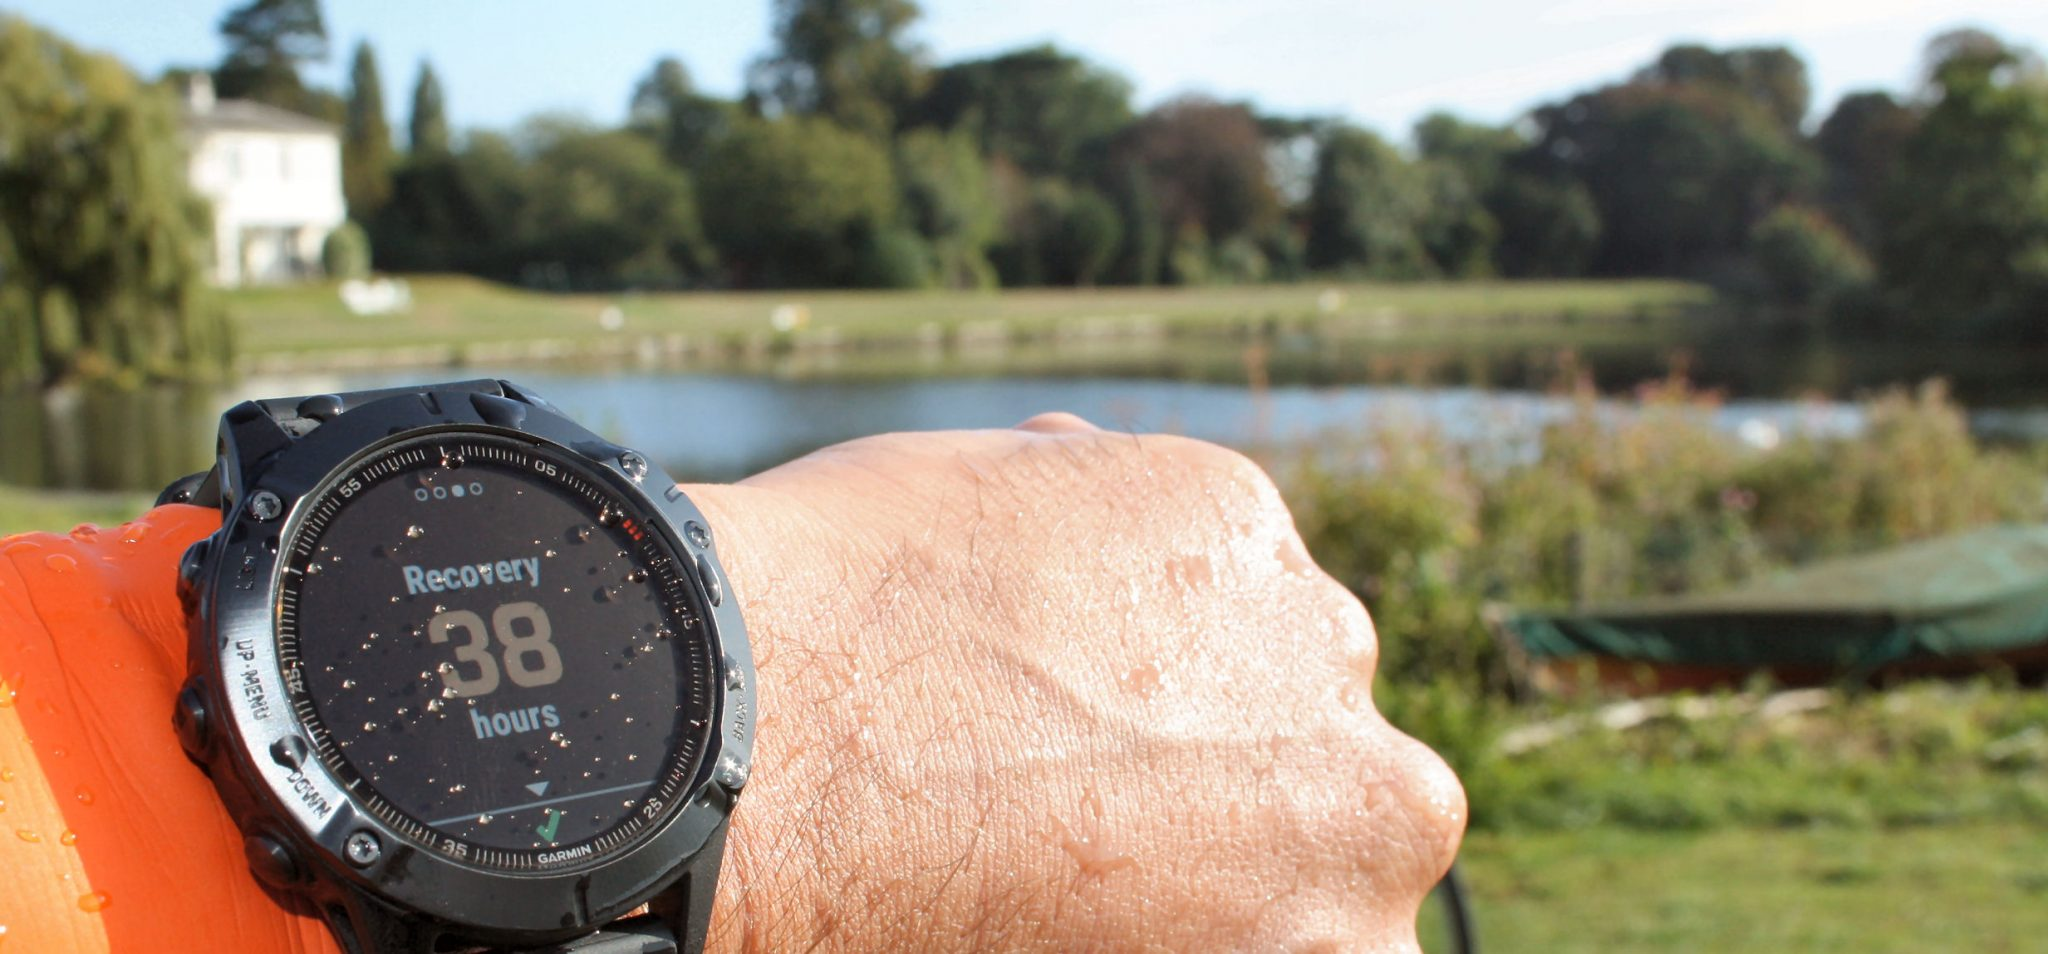 Garmin fenix 6 specifications review